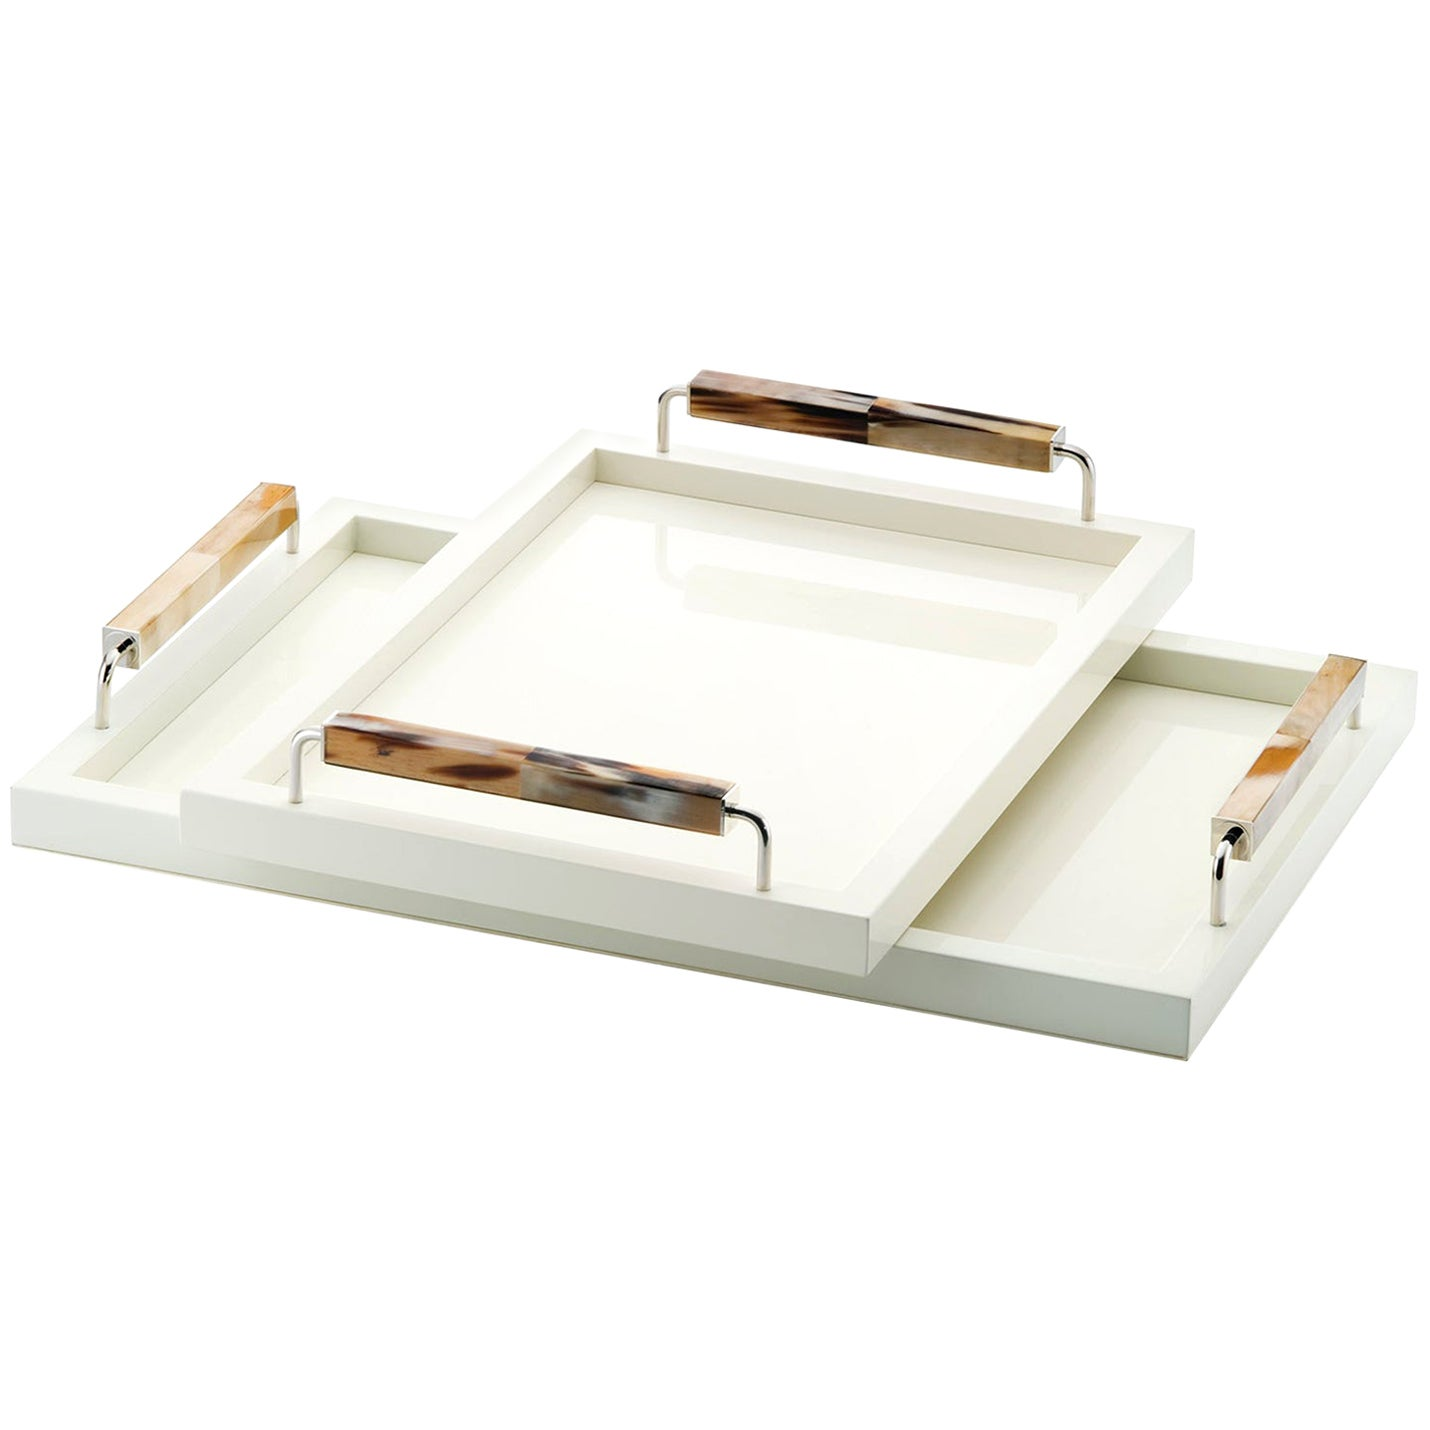 Isacco Tray in Lacquered Wood, Corno Italiano and Chromed Brass, Mod. 1792